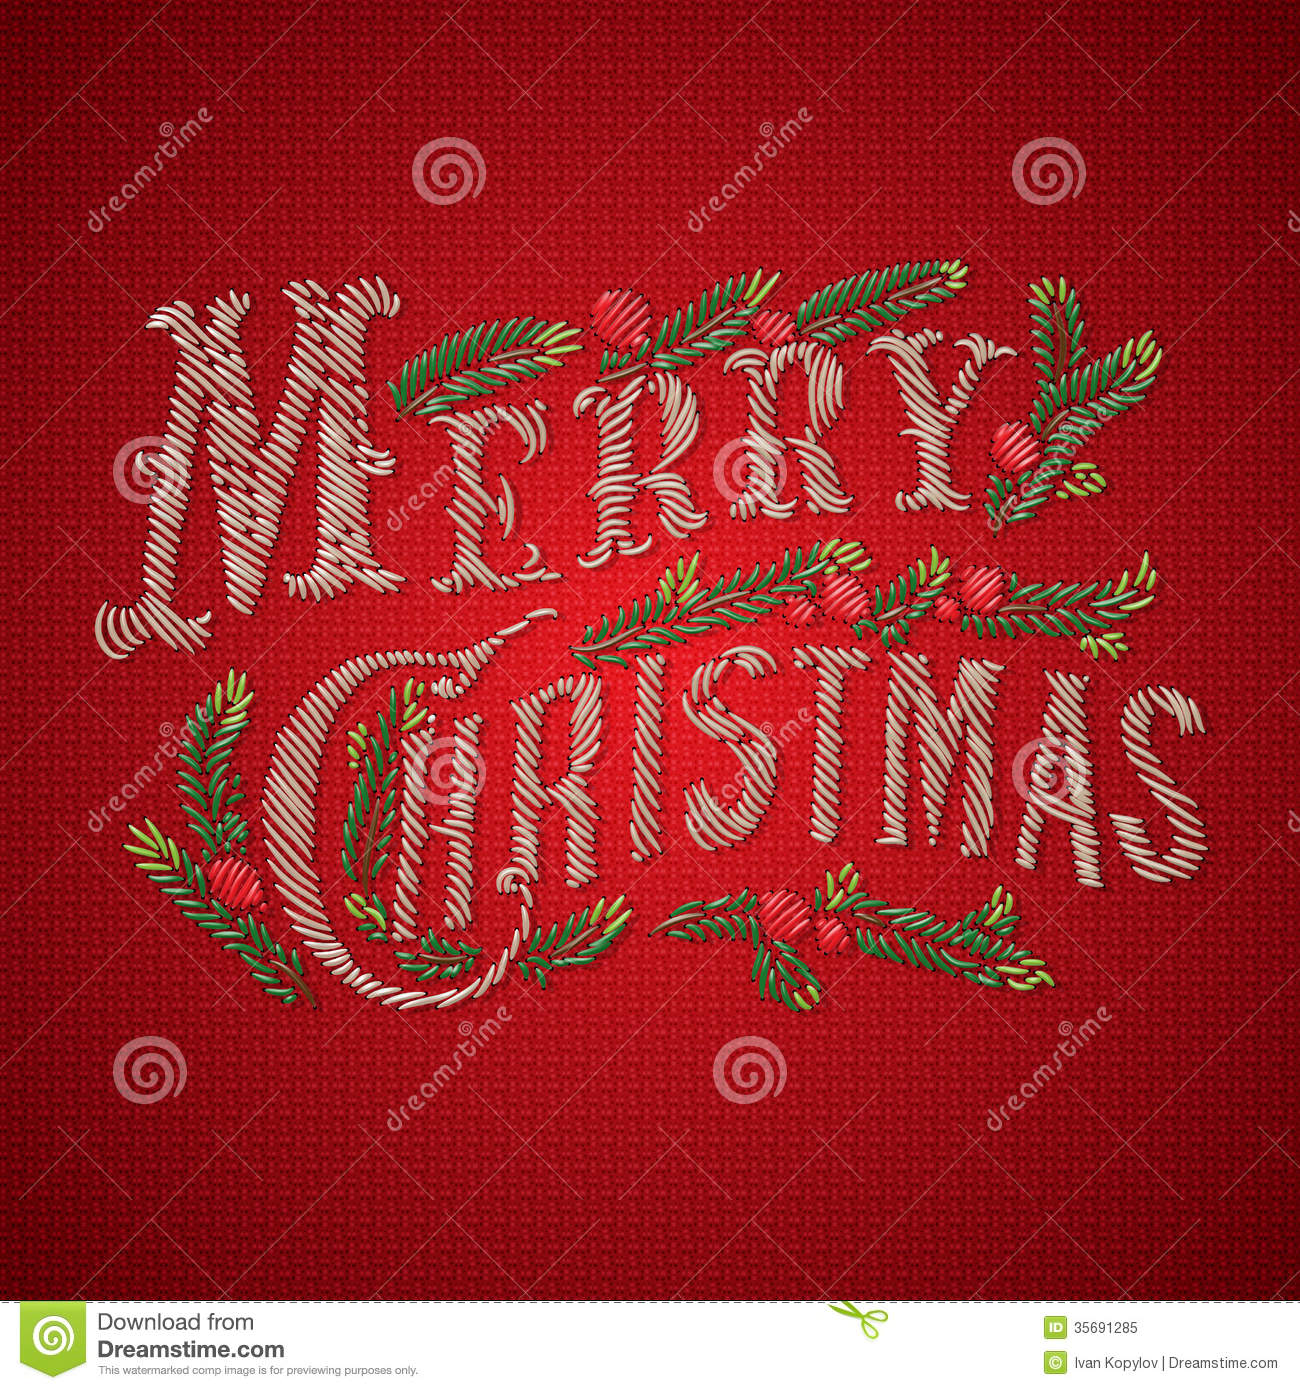 Embroidered Merry Christmas Card Stock Vector - Illustration of ...